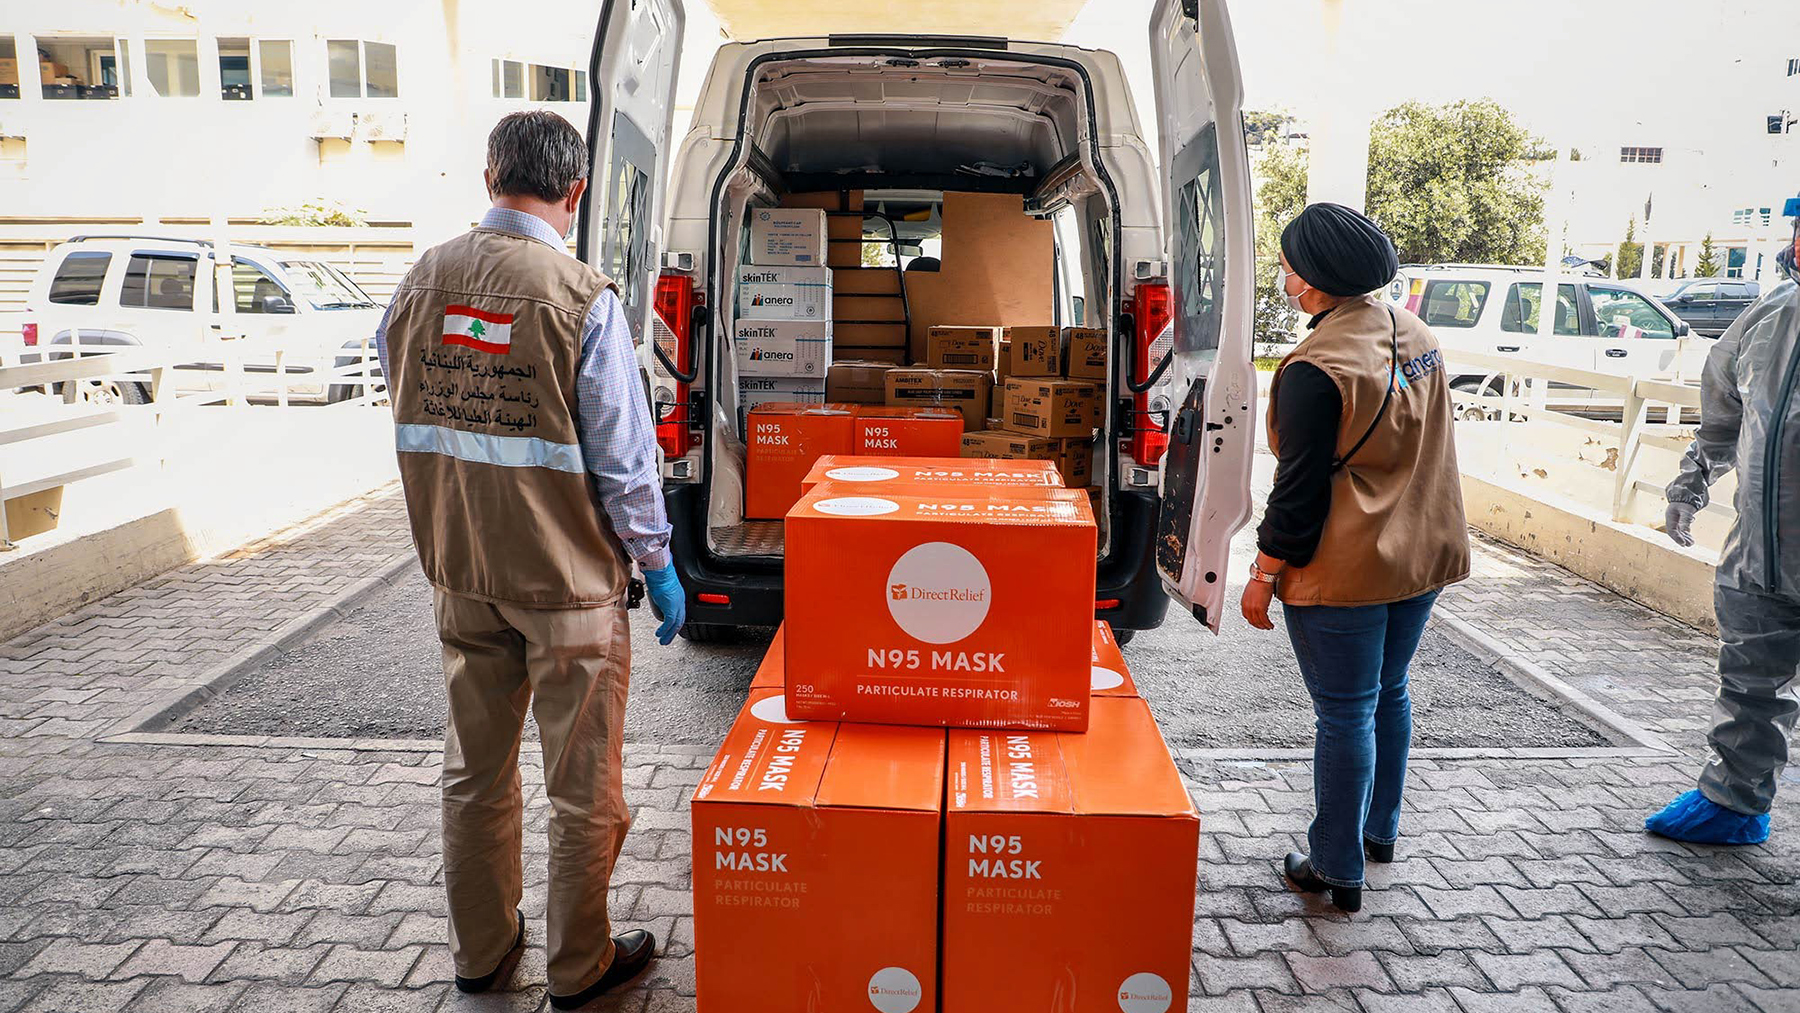 Protective gear from Direct Relief arrives at Rafik Hariri University Hospital in Lebanon in April 2020. The nonprofit, Anera Lebanon, received medical support from Direct Relief this week. (Anera photo)